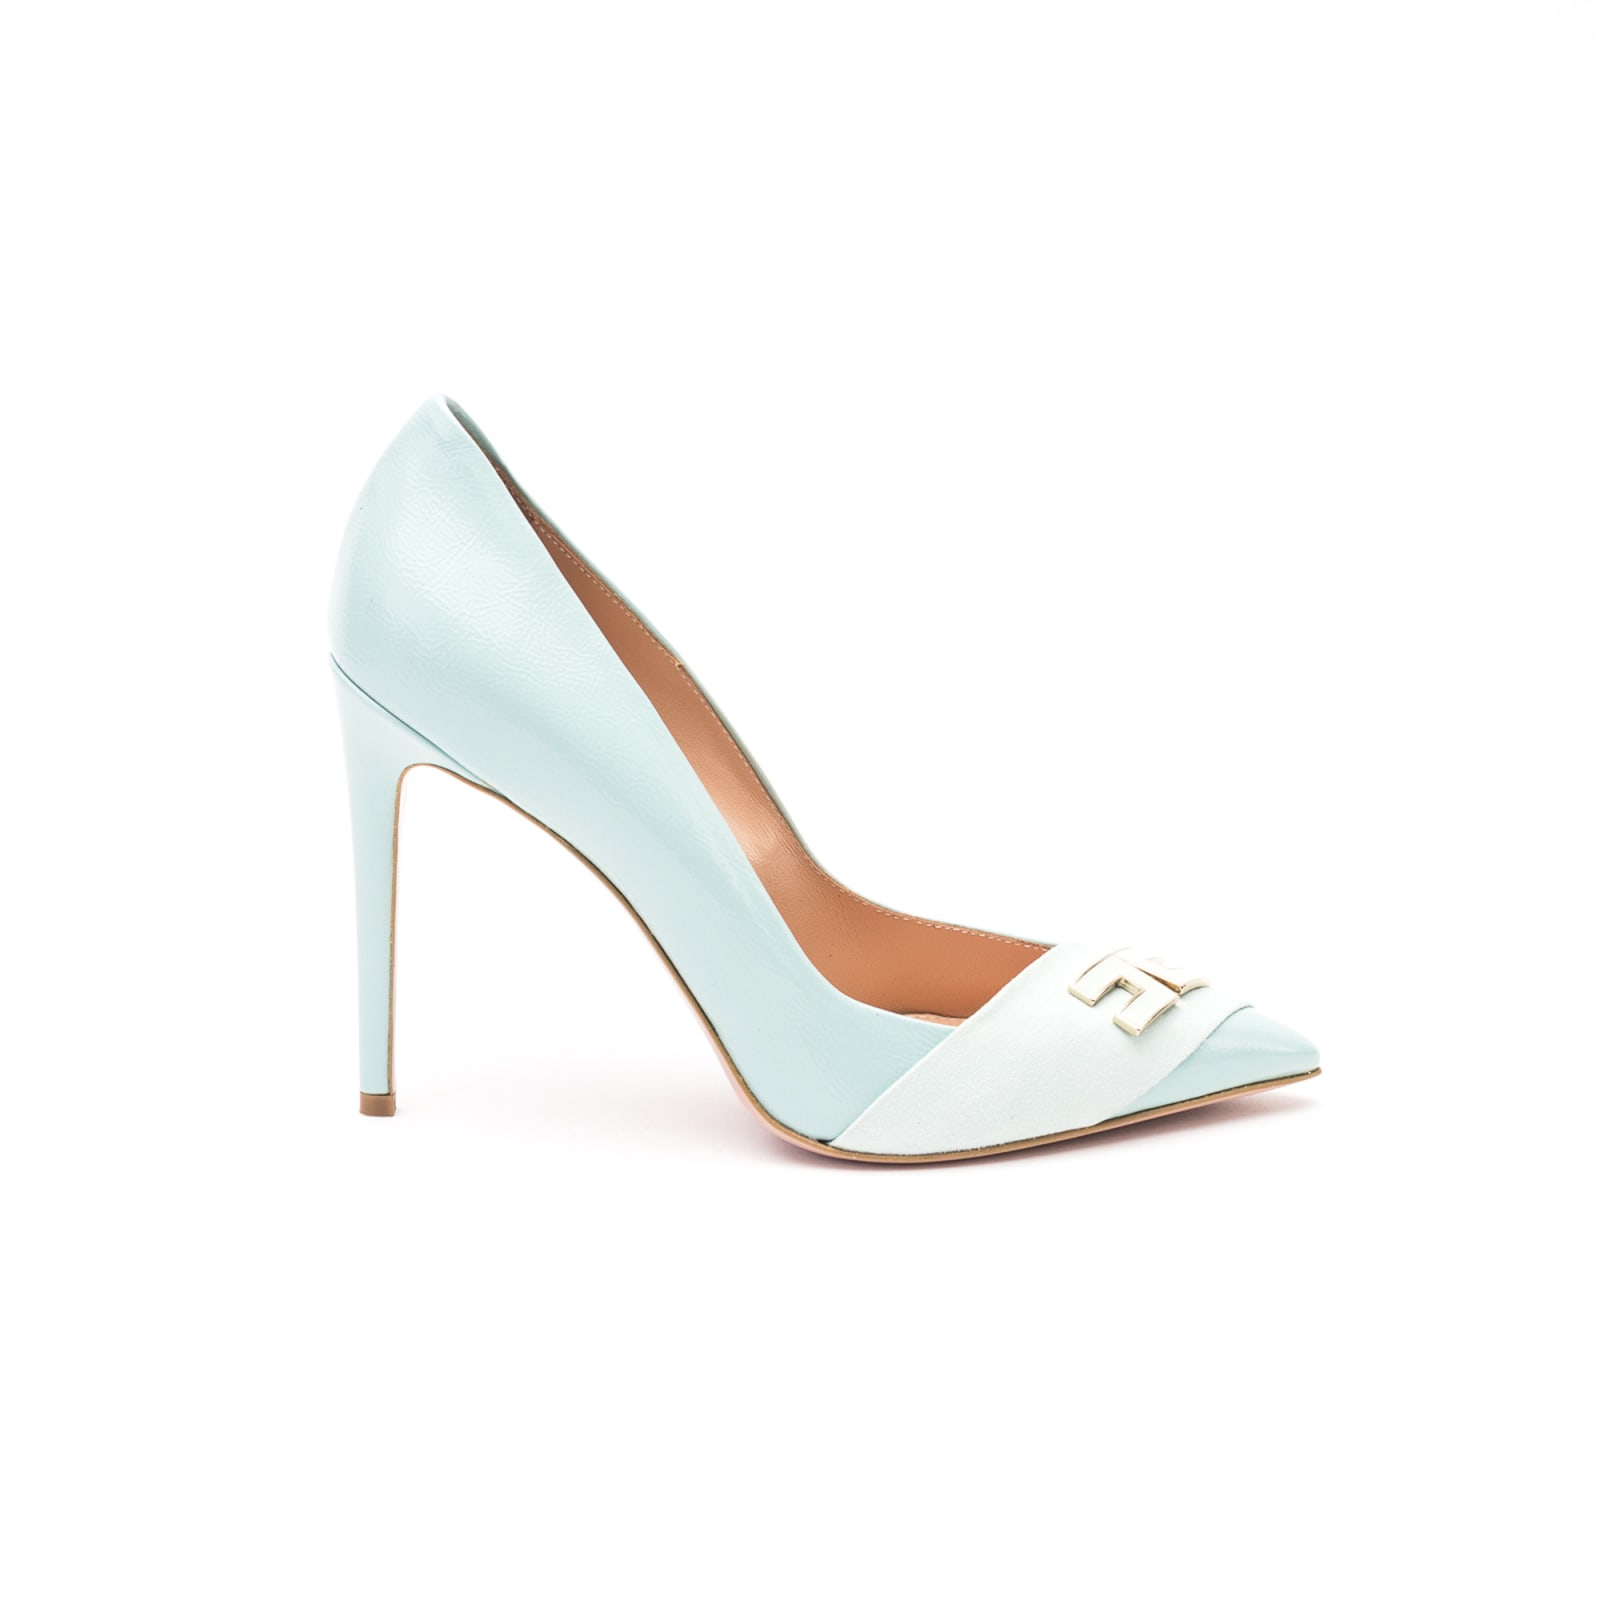 San Francisco 485ae e50fb Elisabetta Franchi Pumps